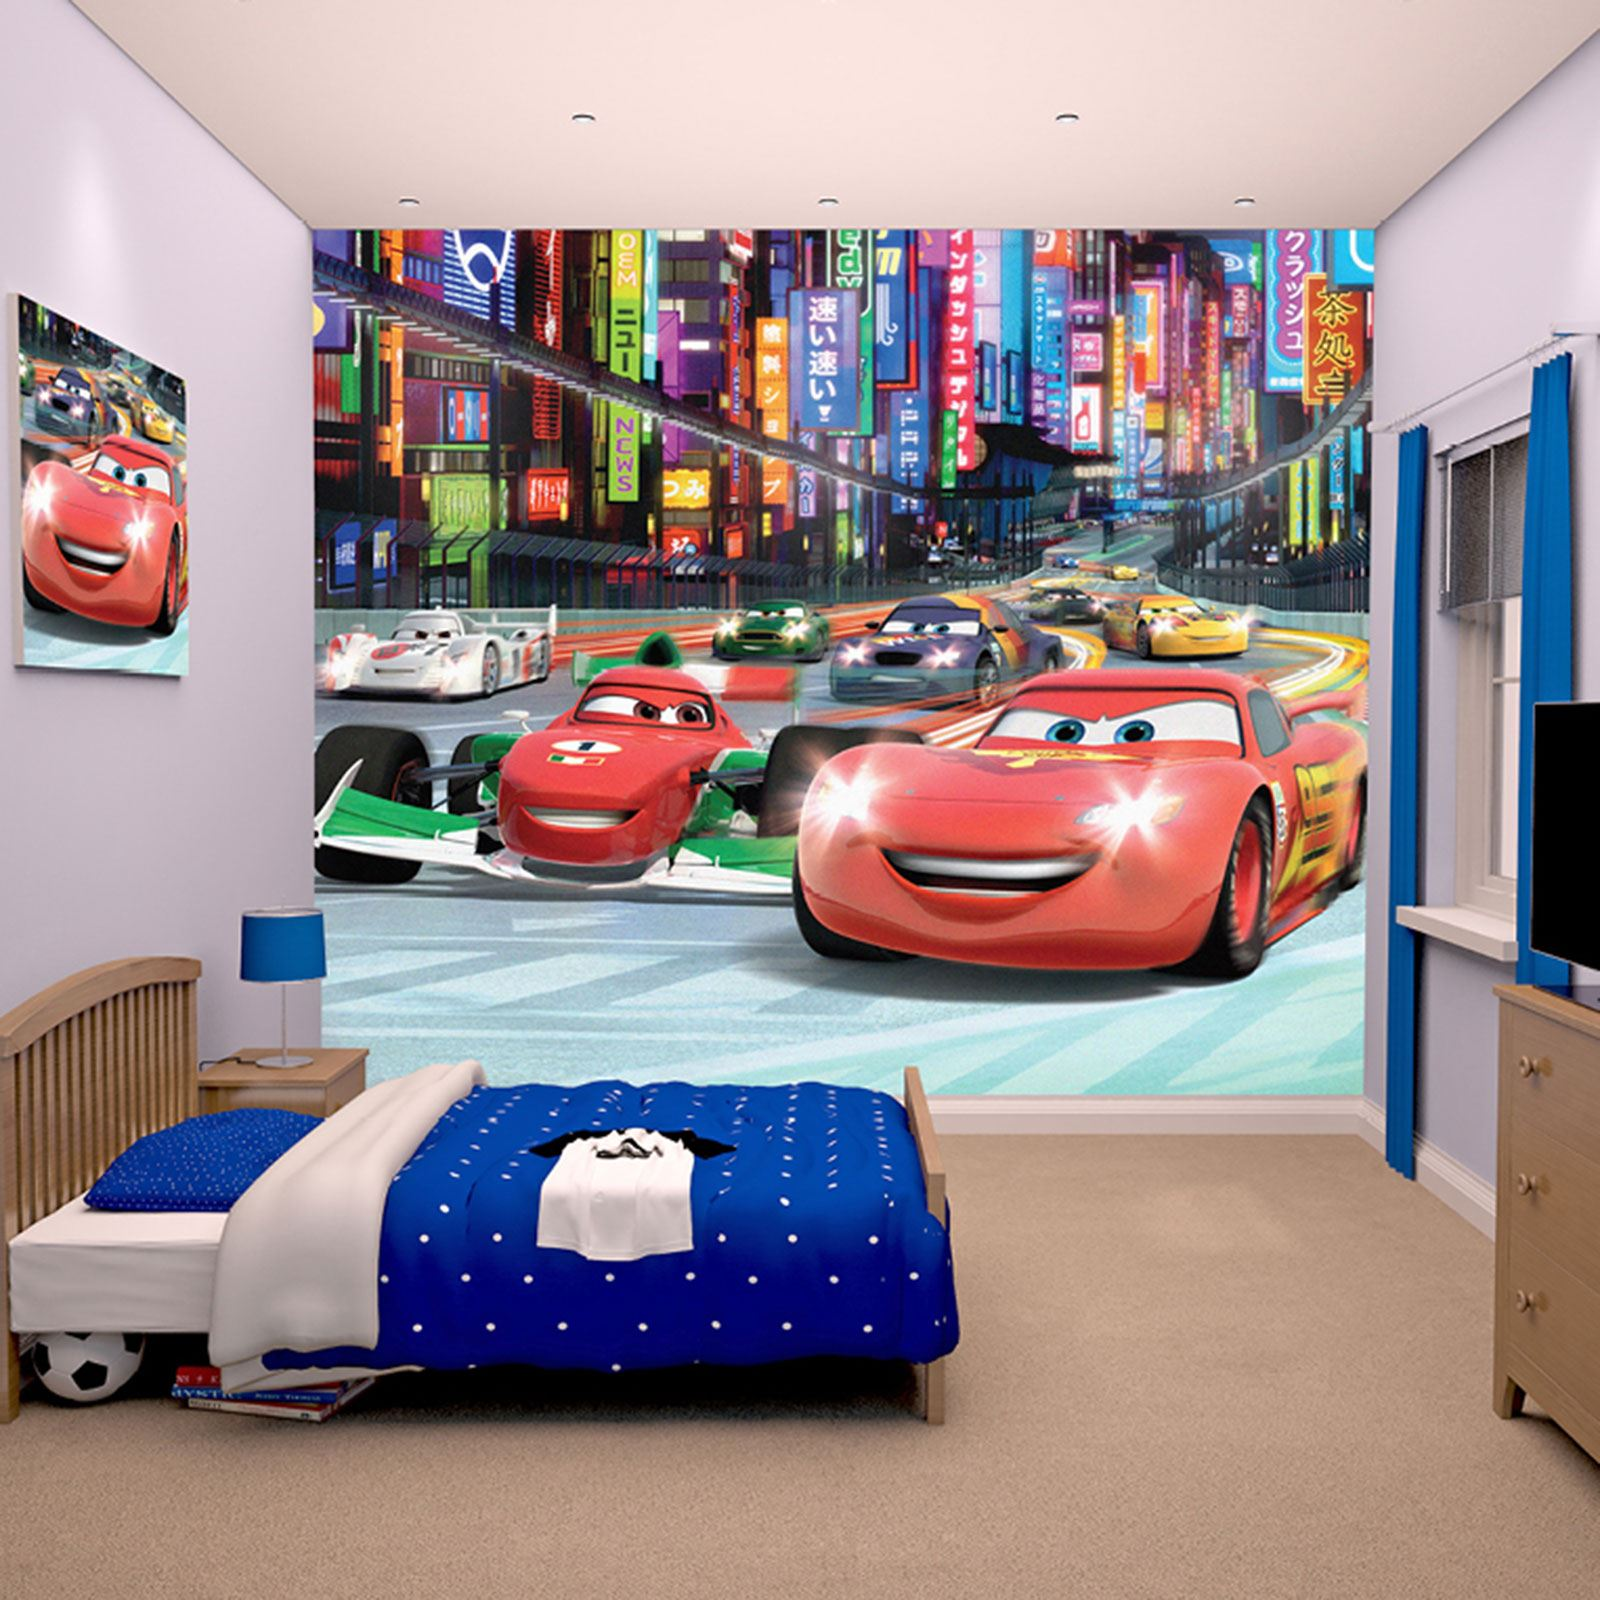 Jcb Bedroom Wallpaper